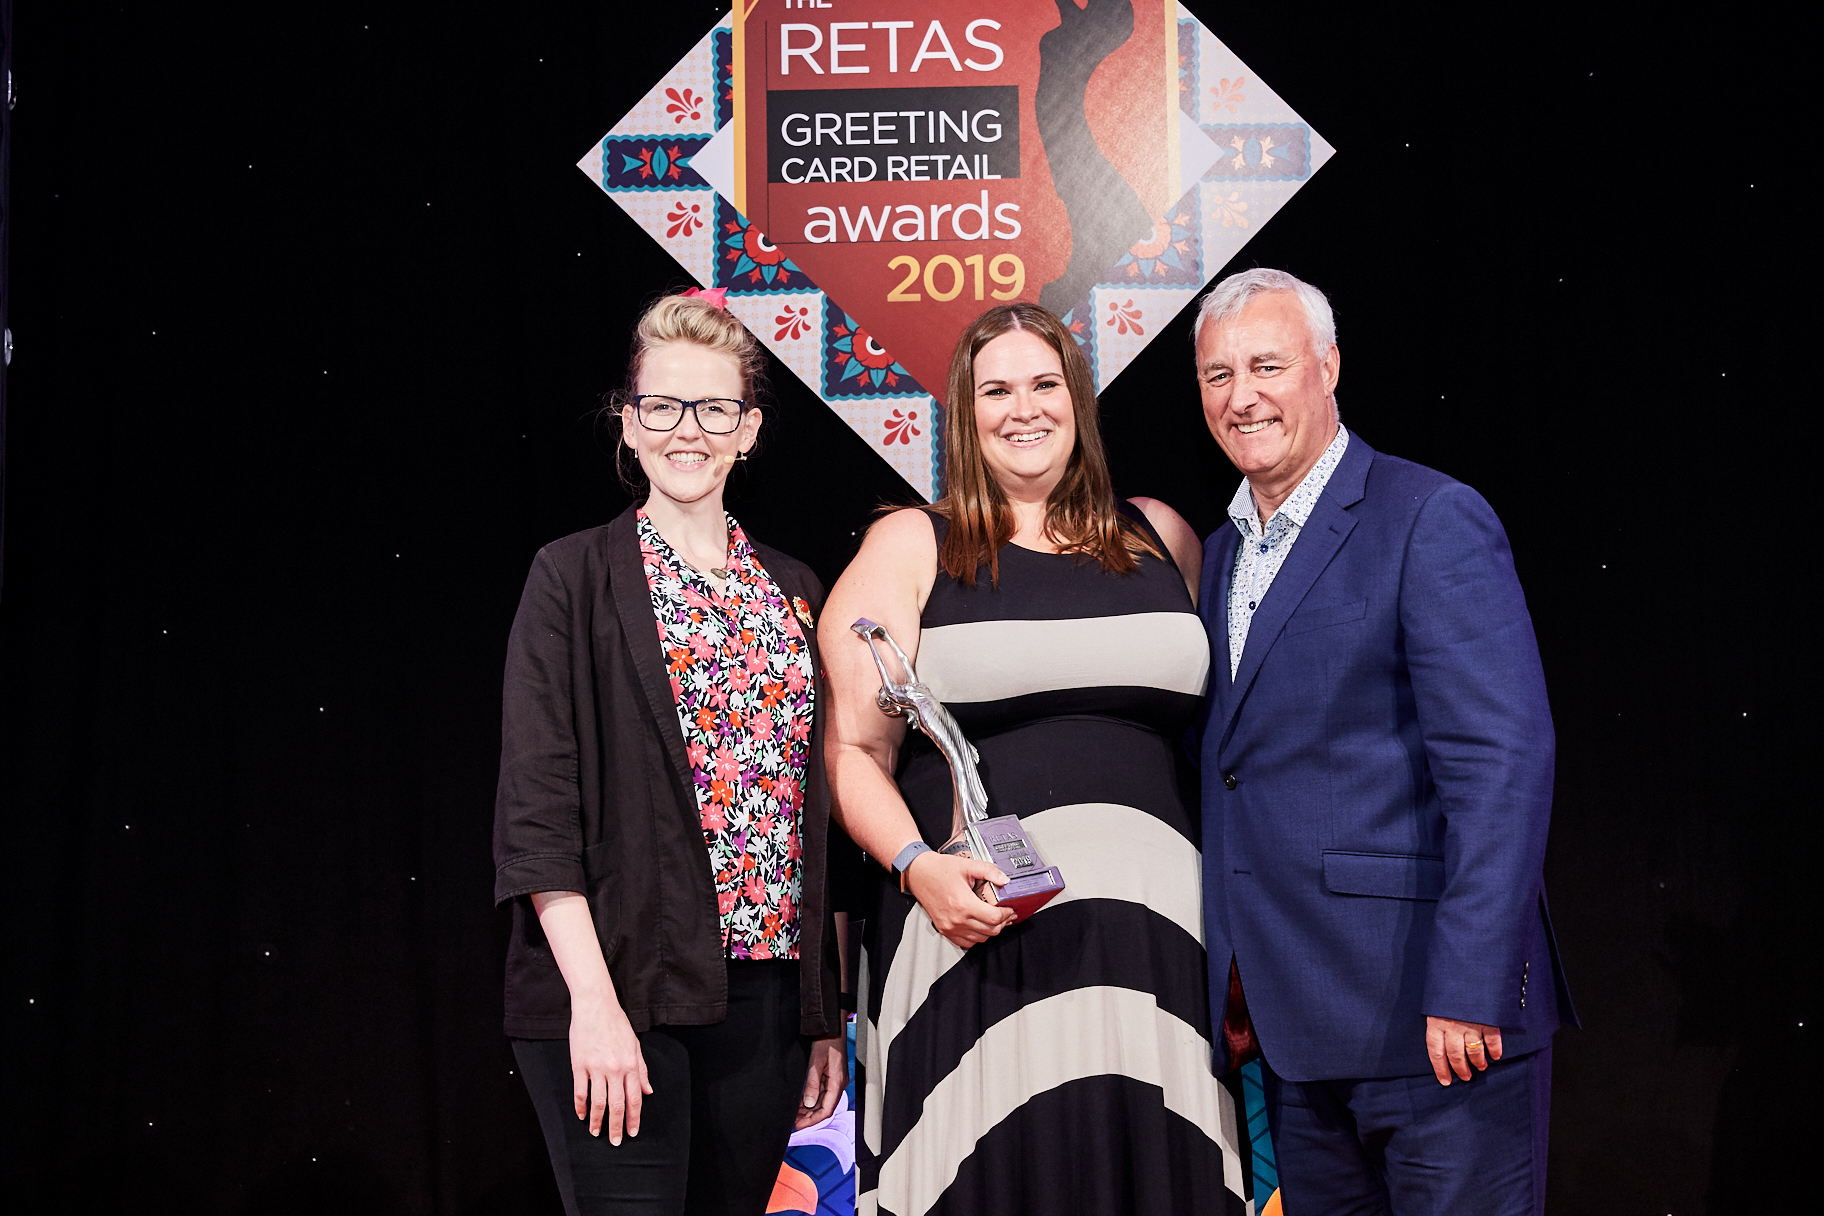 Above: Carly Pearson (middle) collecting the award for Best Supermarket Retailer of Greeting Cards at the last Retas awards from Simon Boyd, operations director of PG Live, sponsor of the award category.